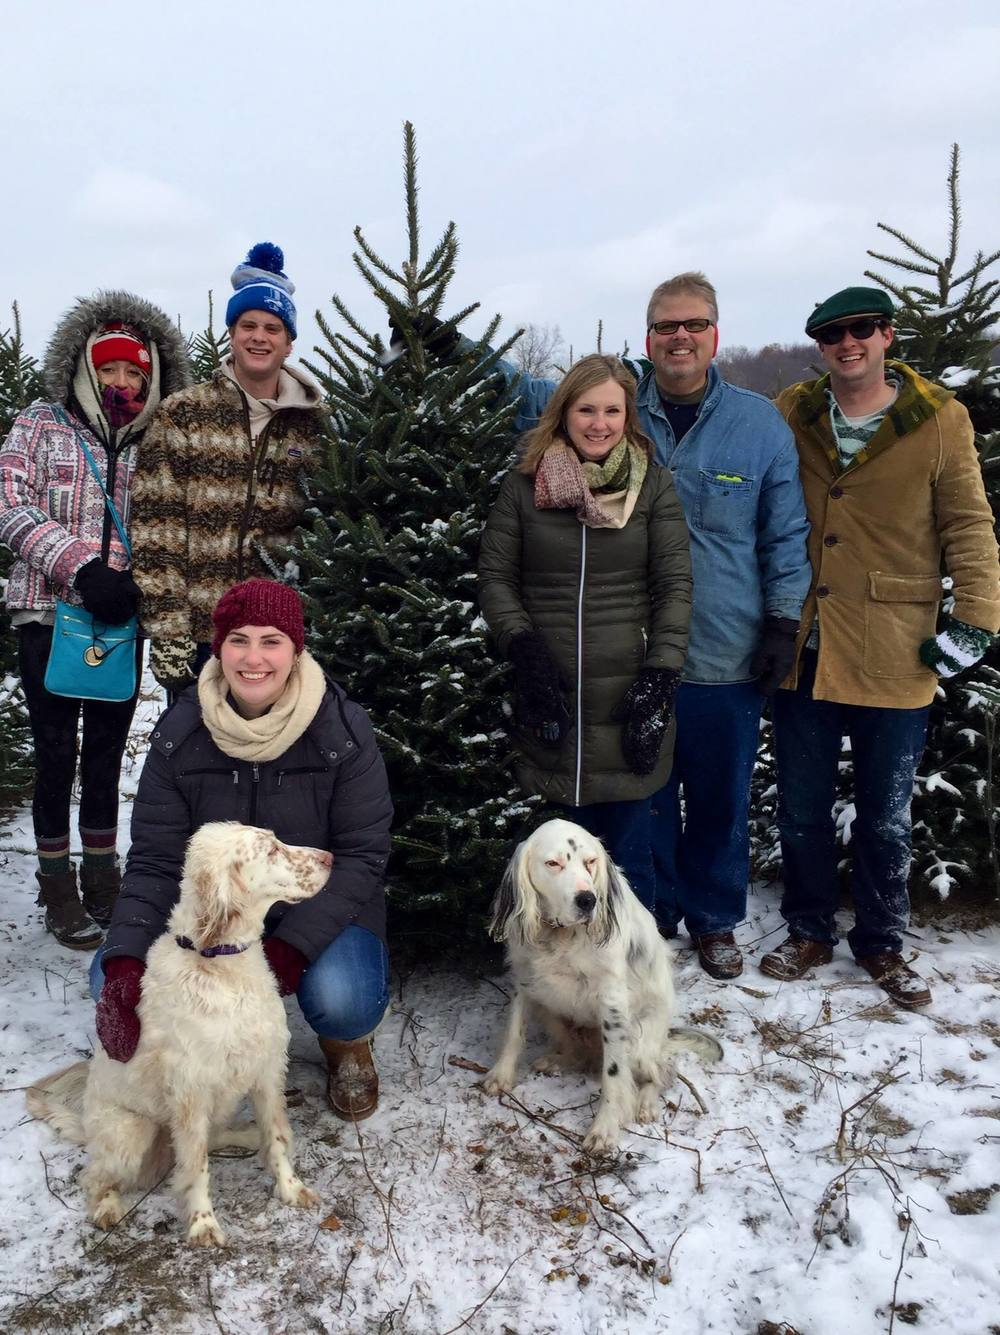 The Green family picking out their tree!